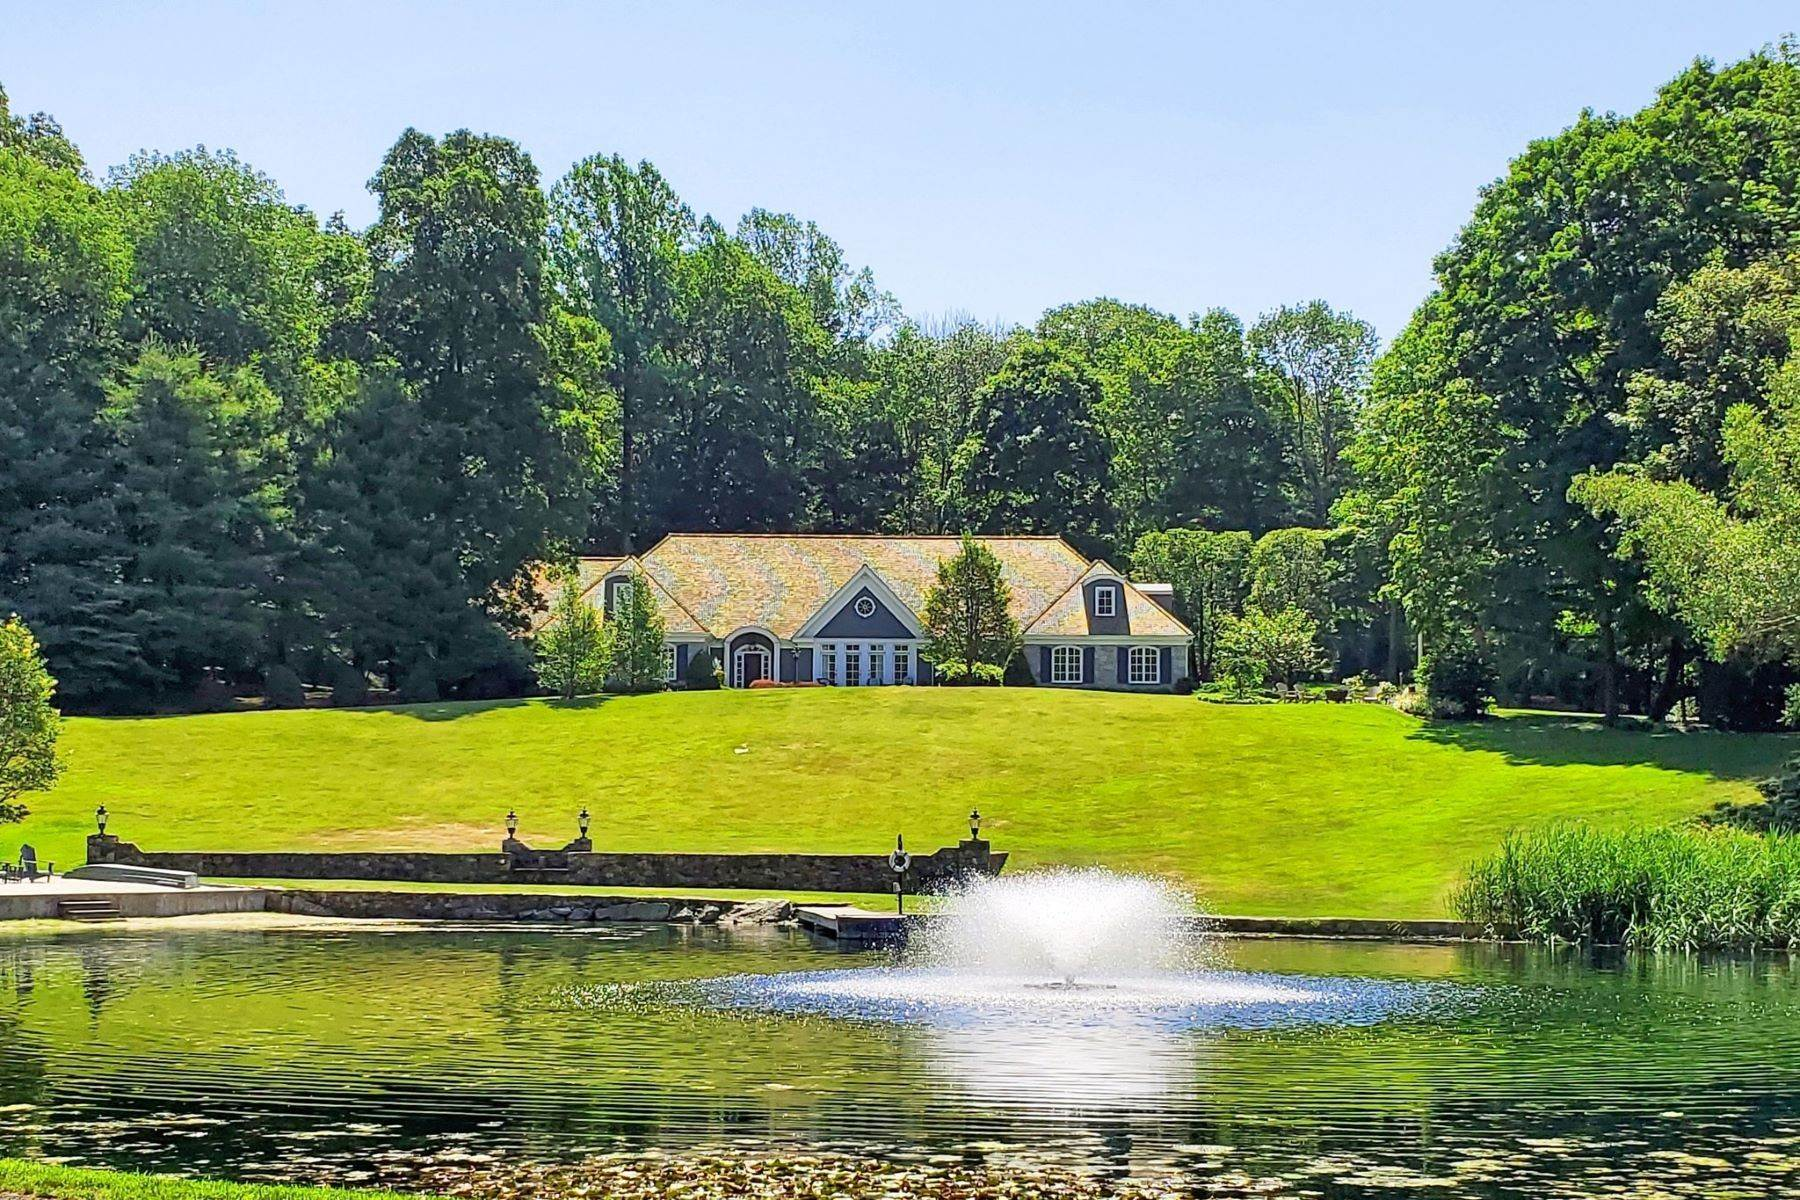 Single Family Homes for Sale at EXTRAORDINARY FRENCH COUNTRY COMPOUND! 104 West Mountain Road Ridgefield, Connecticut 06877 United States